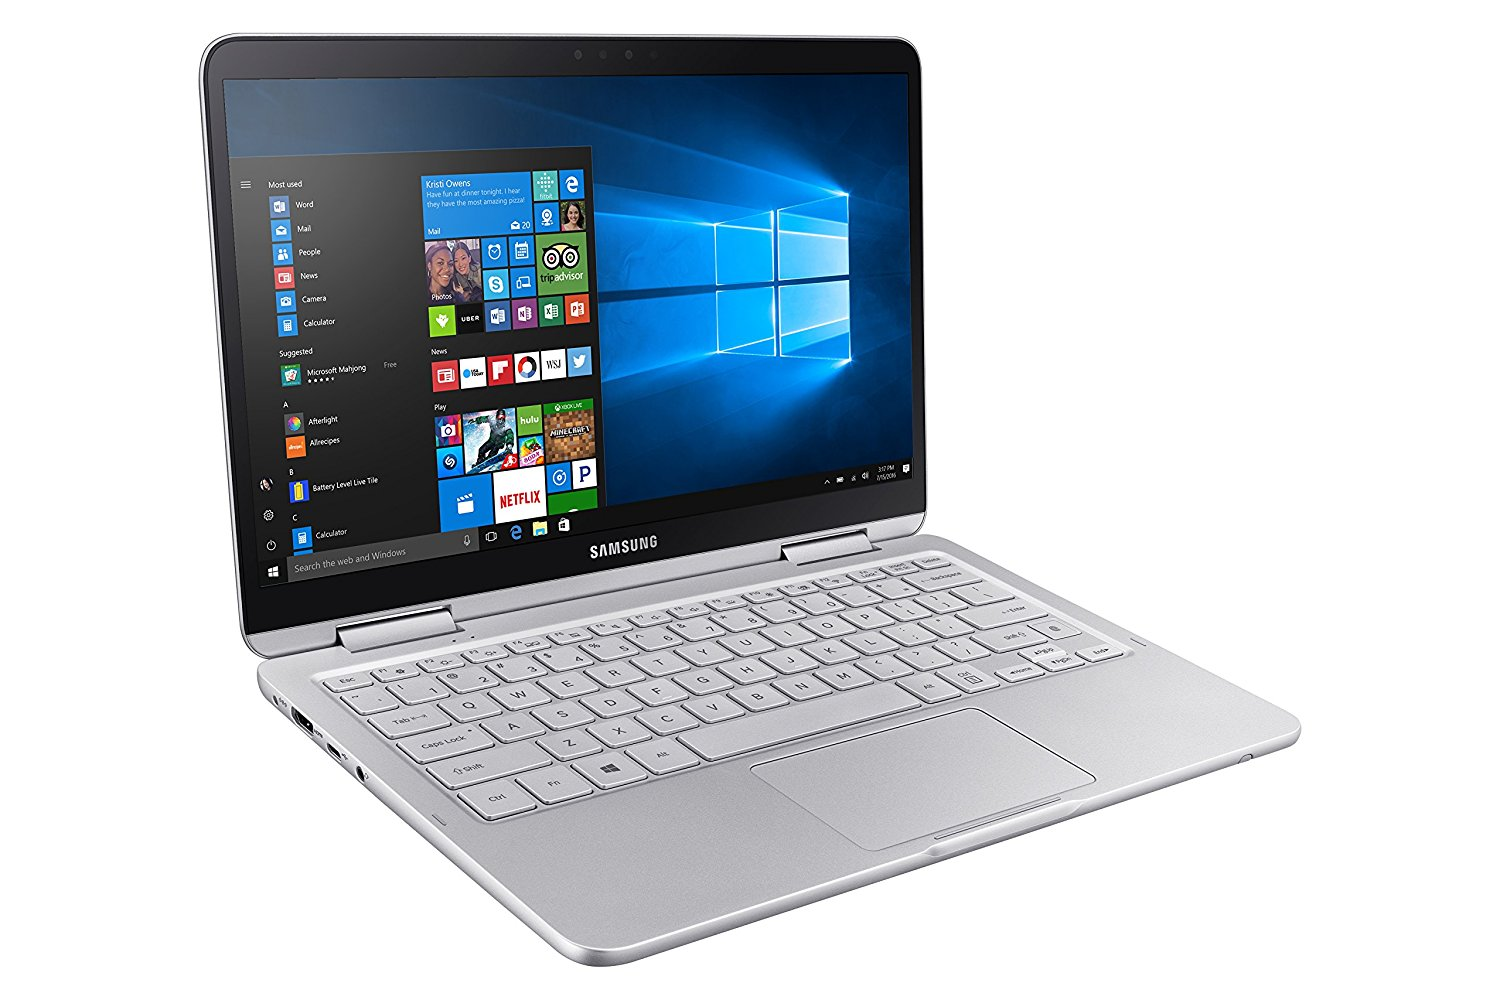 Samsung Notebook 9 Pen product image